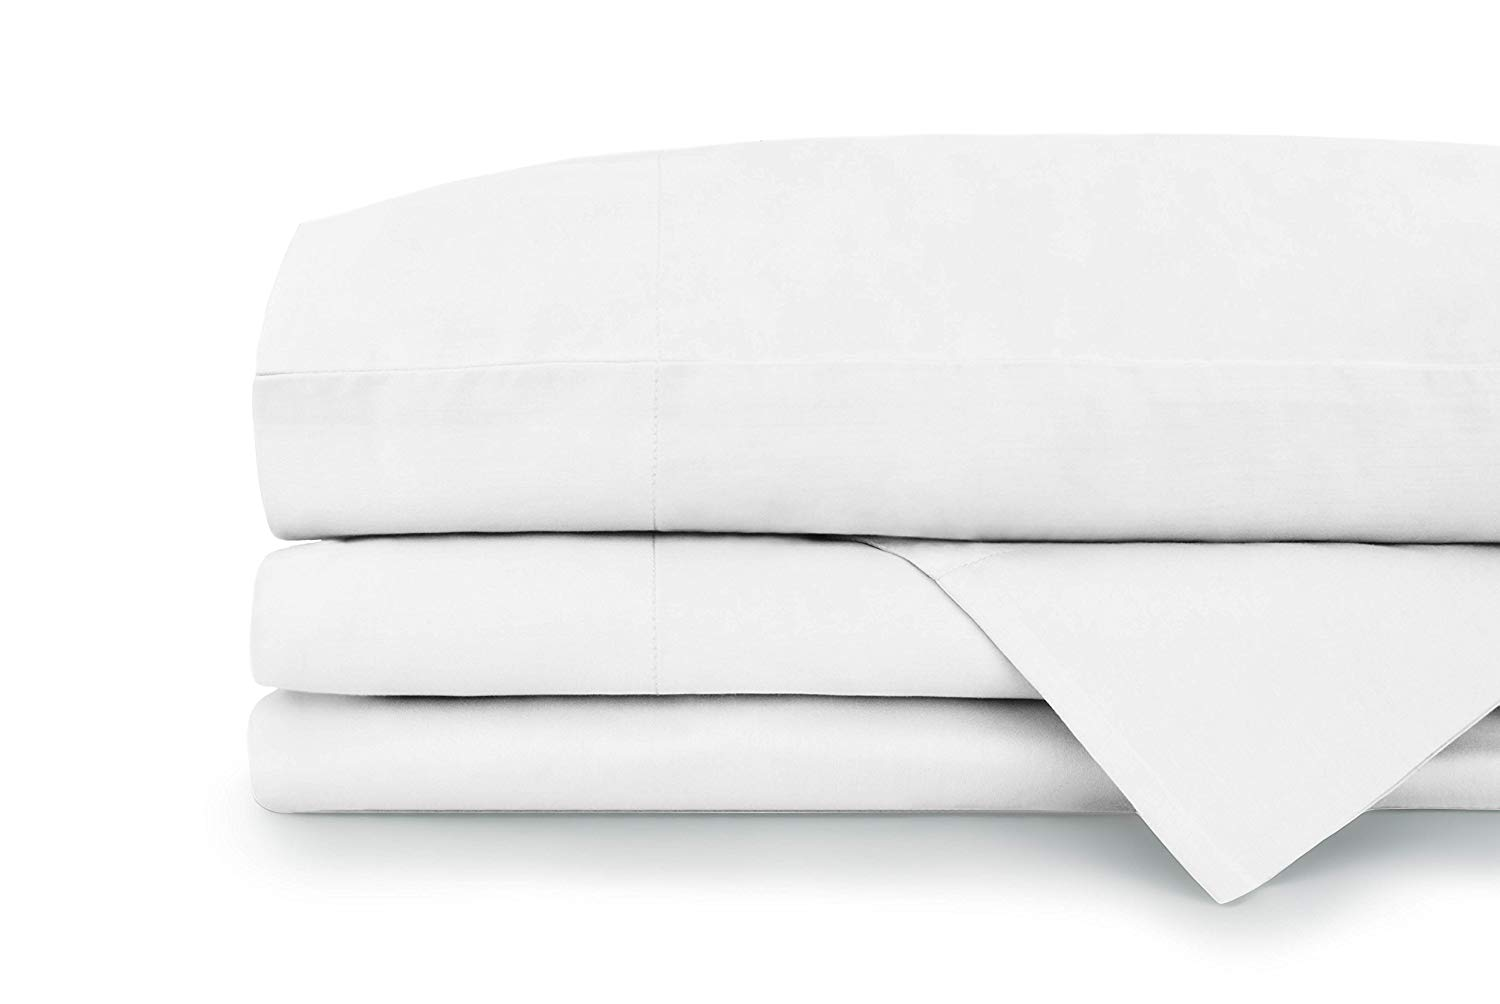 """400 Thread Count 100% Cotton Sheets, 4 Piece Set, White Queen Sheets Sets, Fits 18"""" Deep Pockets, Wonderful Sateen Weave, Soft Luxury Cotton Sheets and Pillowcases by Americana Bed Collection"""